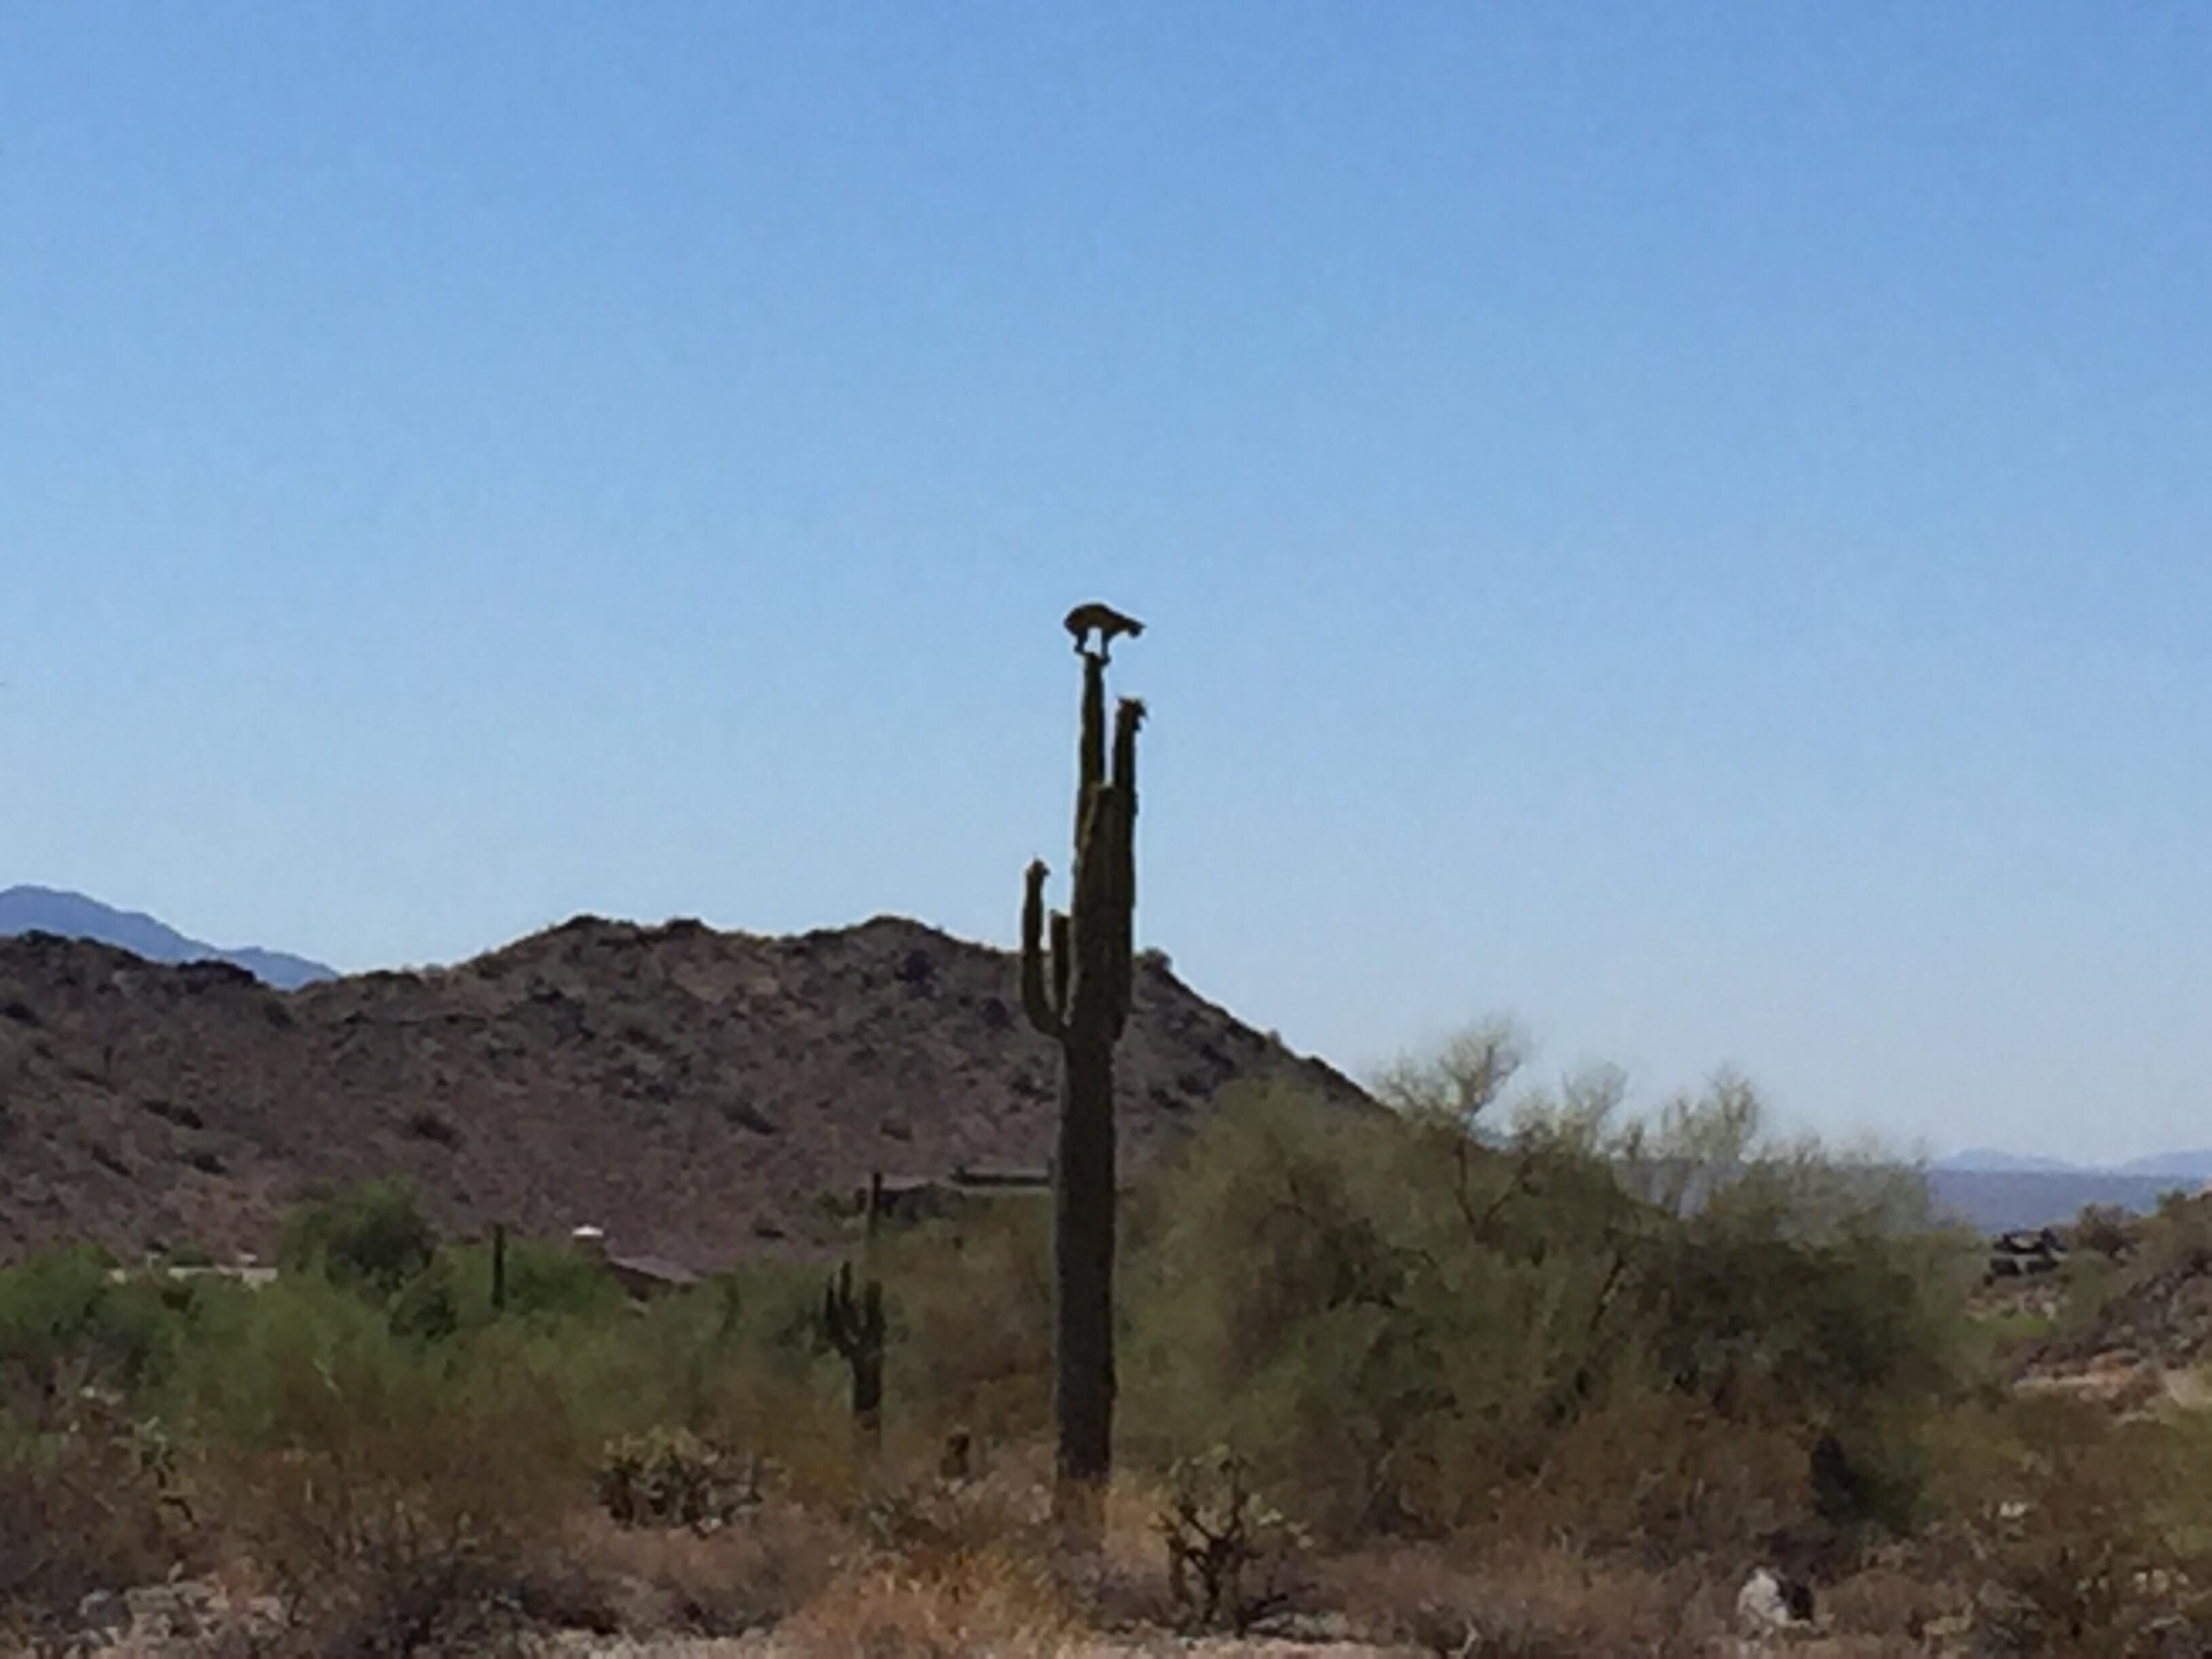 A wide view of a bobcat on top of a cactus. (Source: Philip Houck and Doug Carter)